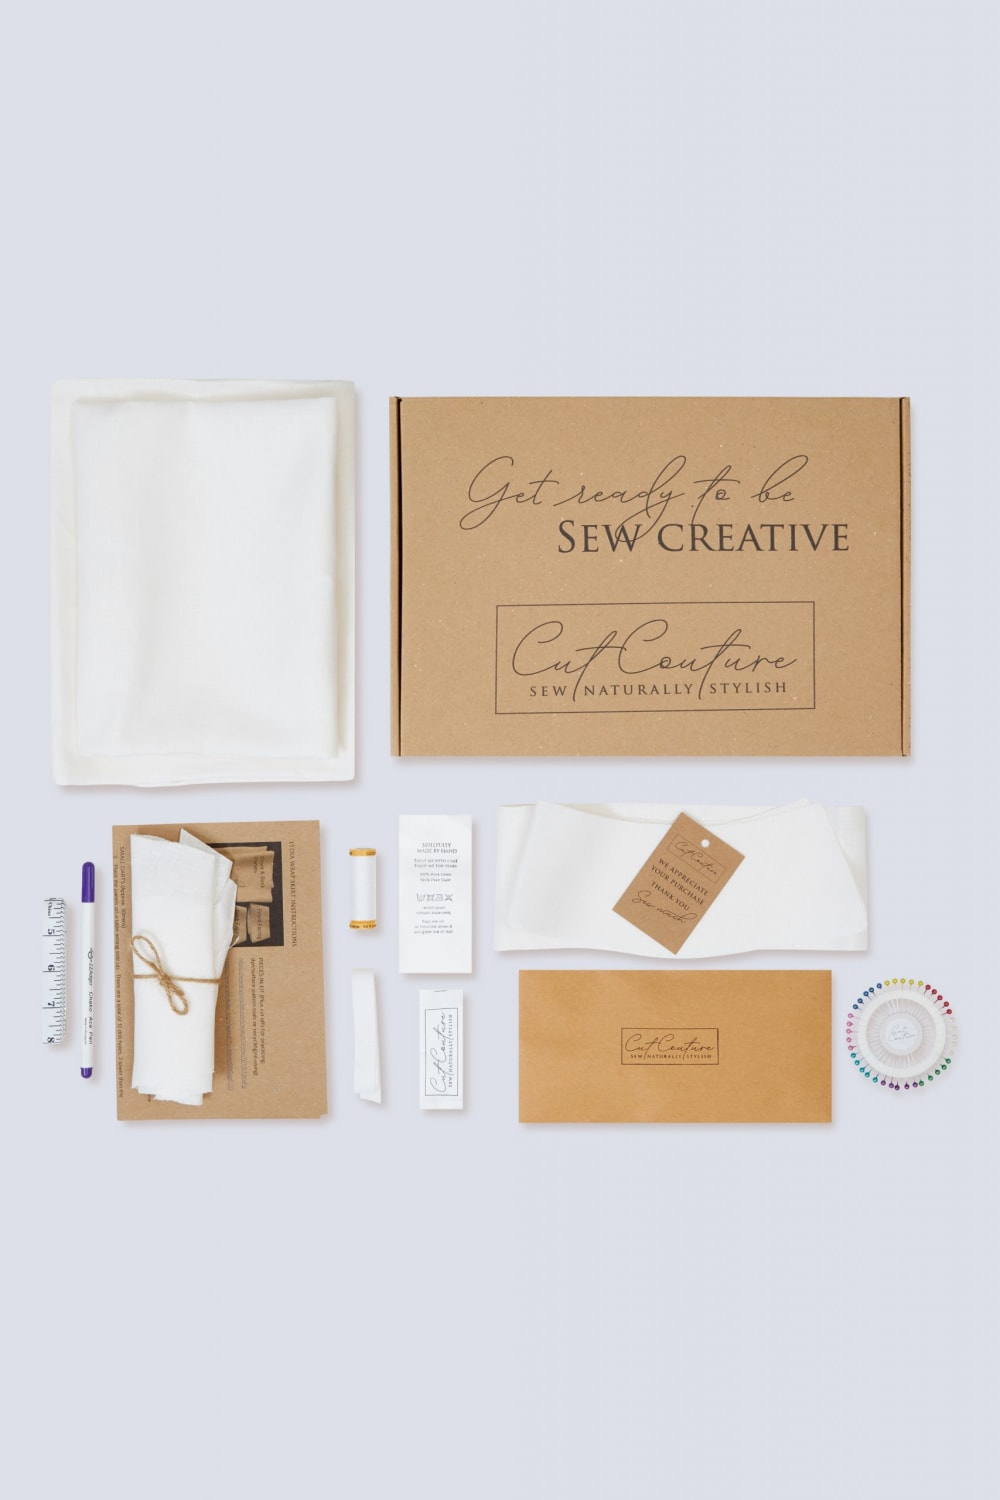 Lydia linen skirt sewing kit contents and packaging